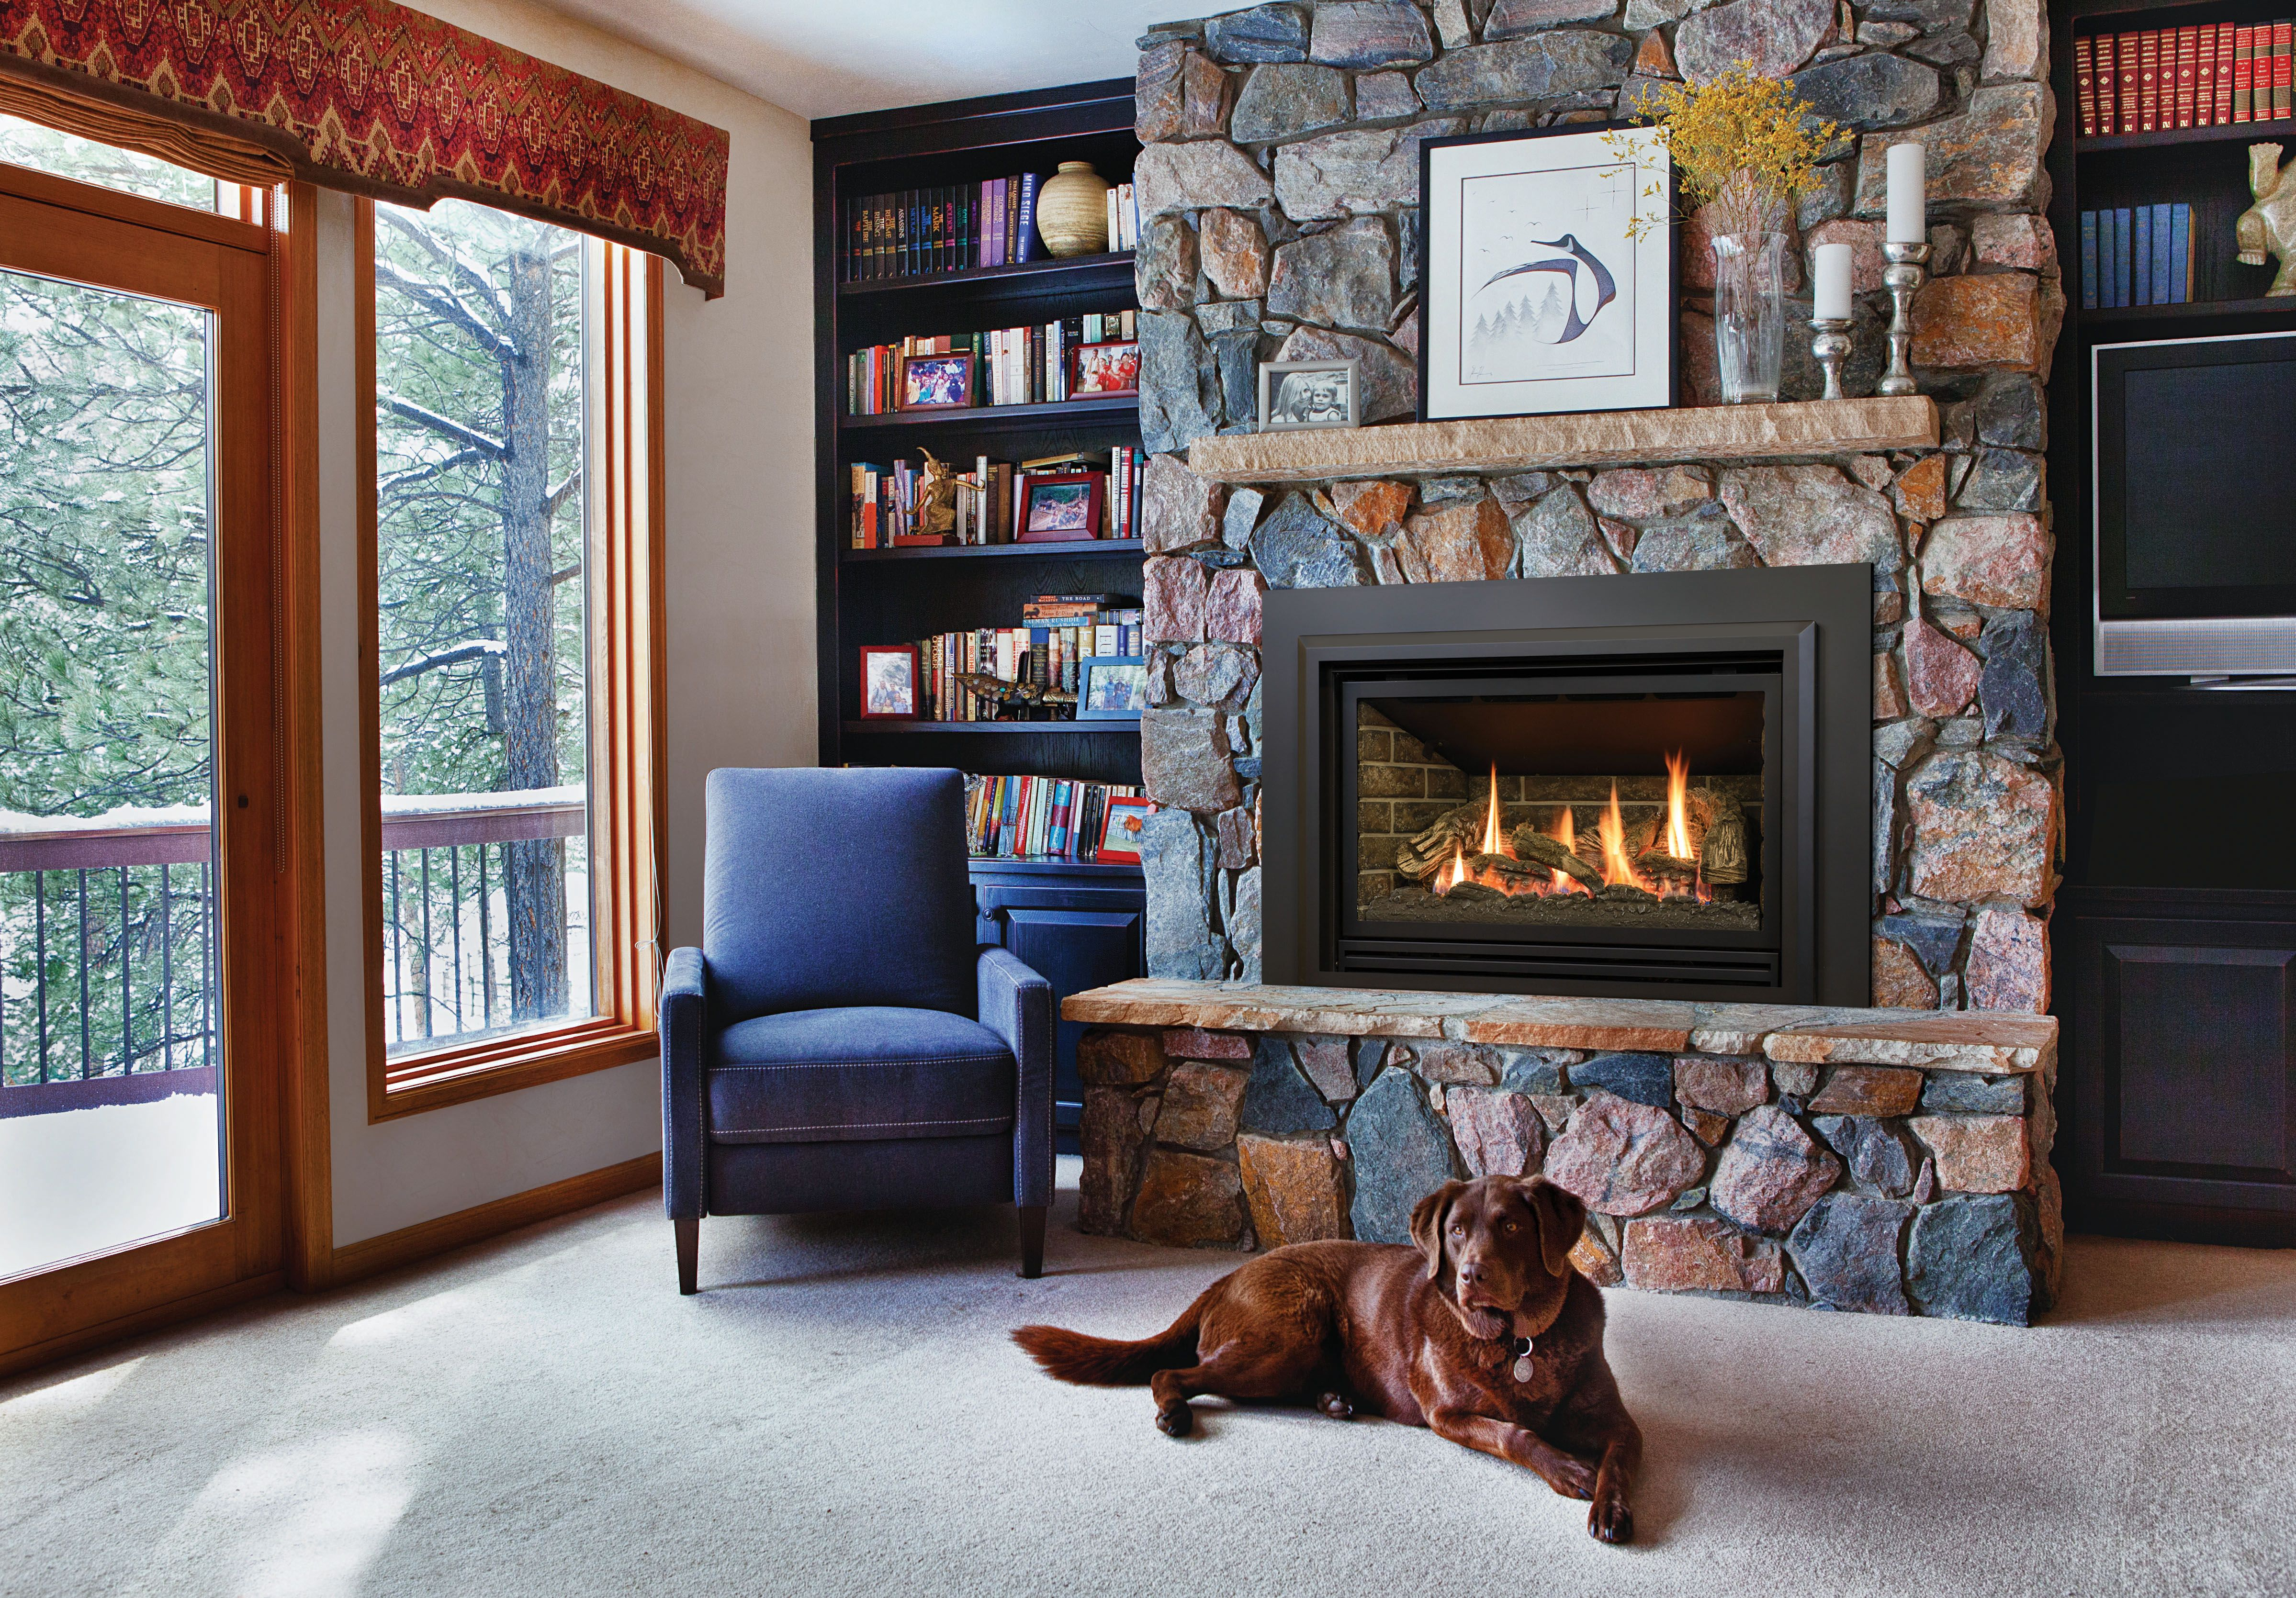 This Is Our Chaska 335s Gas Insert Fireplace For More